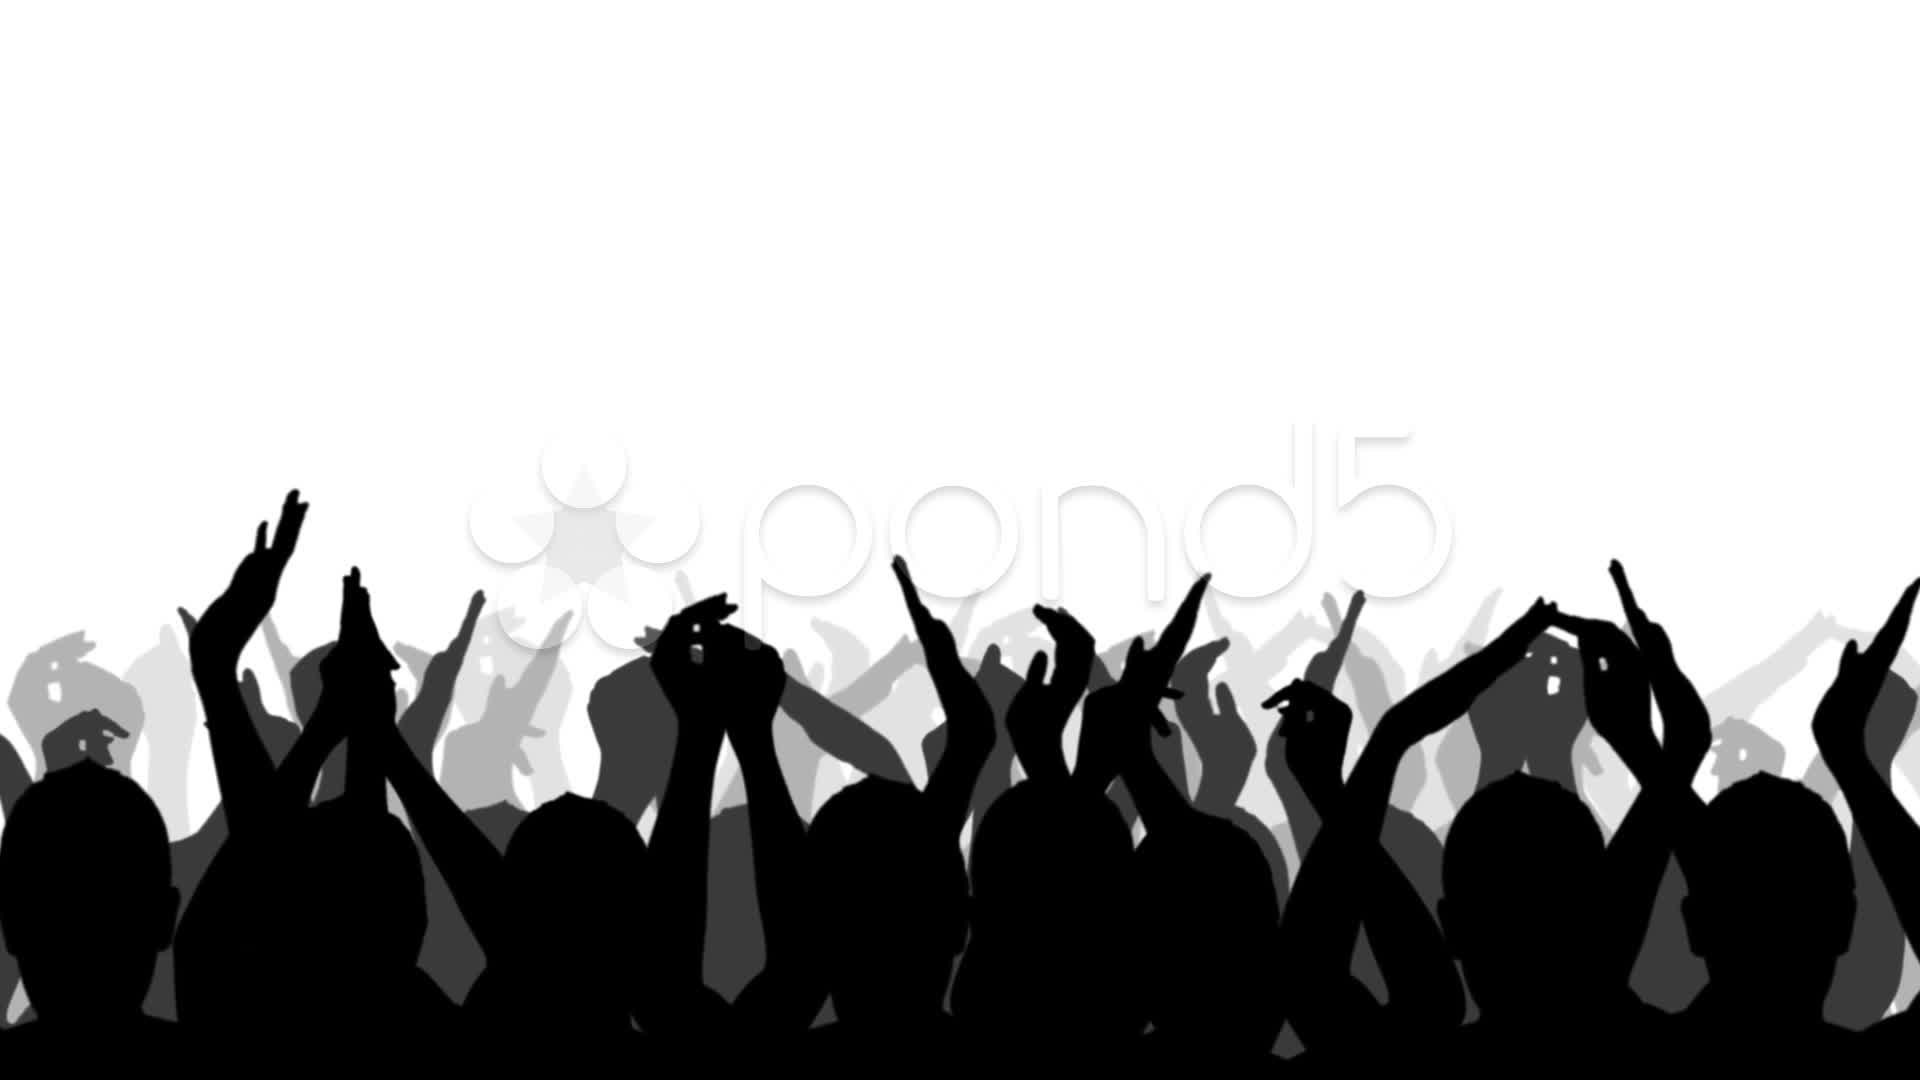 Cheering crowd clipart 3 » Clipart Station.